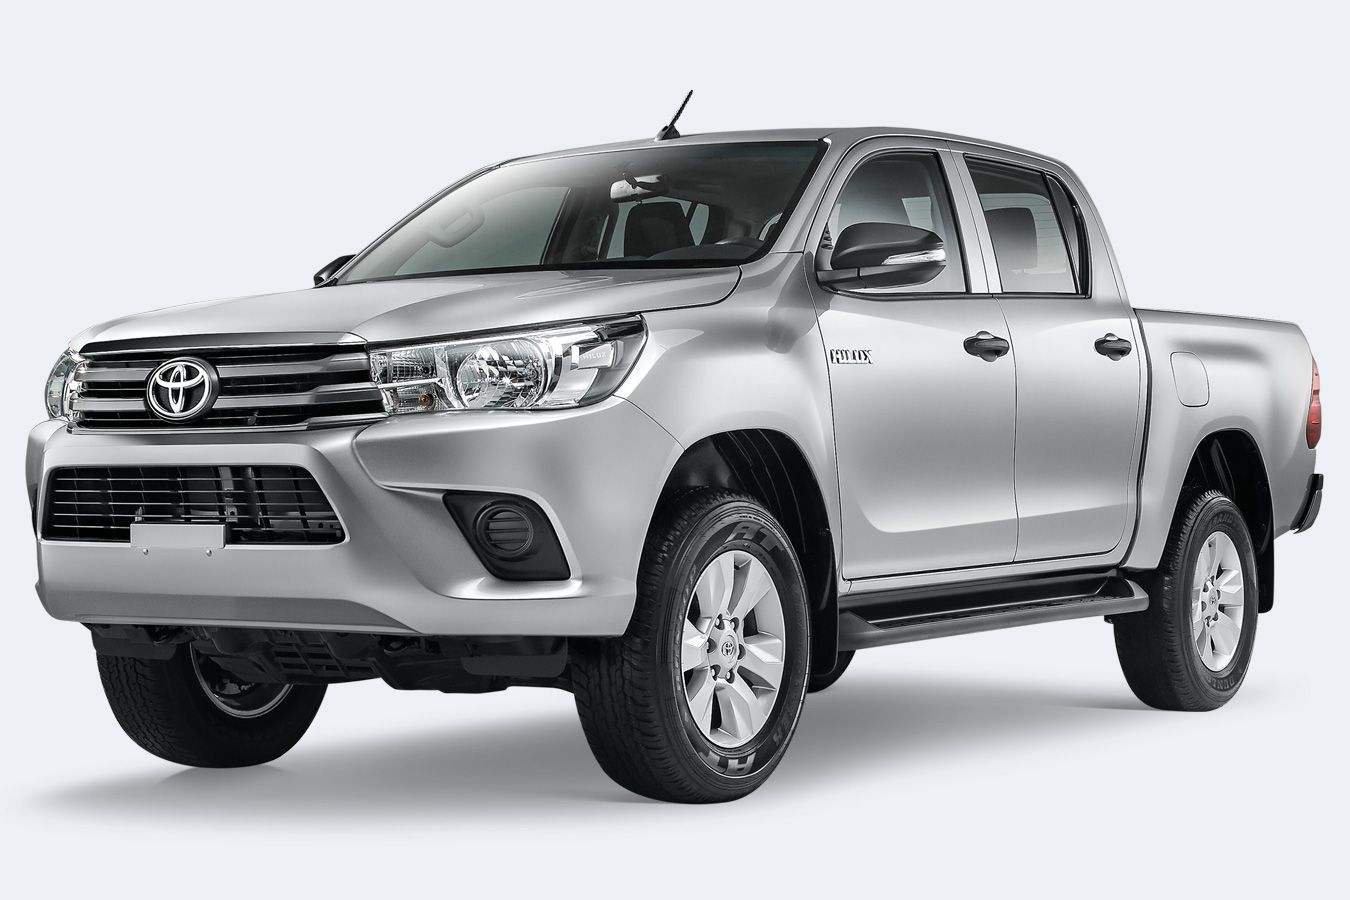 Nice wallpapers Toyota Hilux 1350x900px